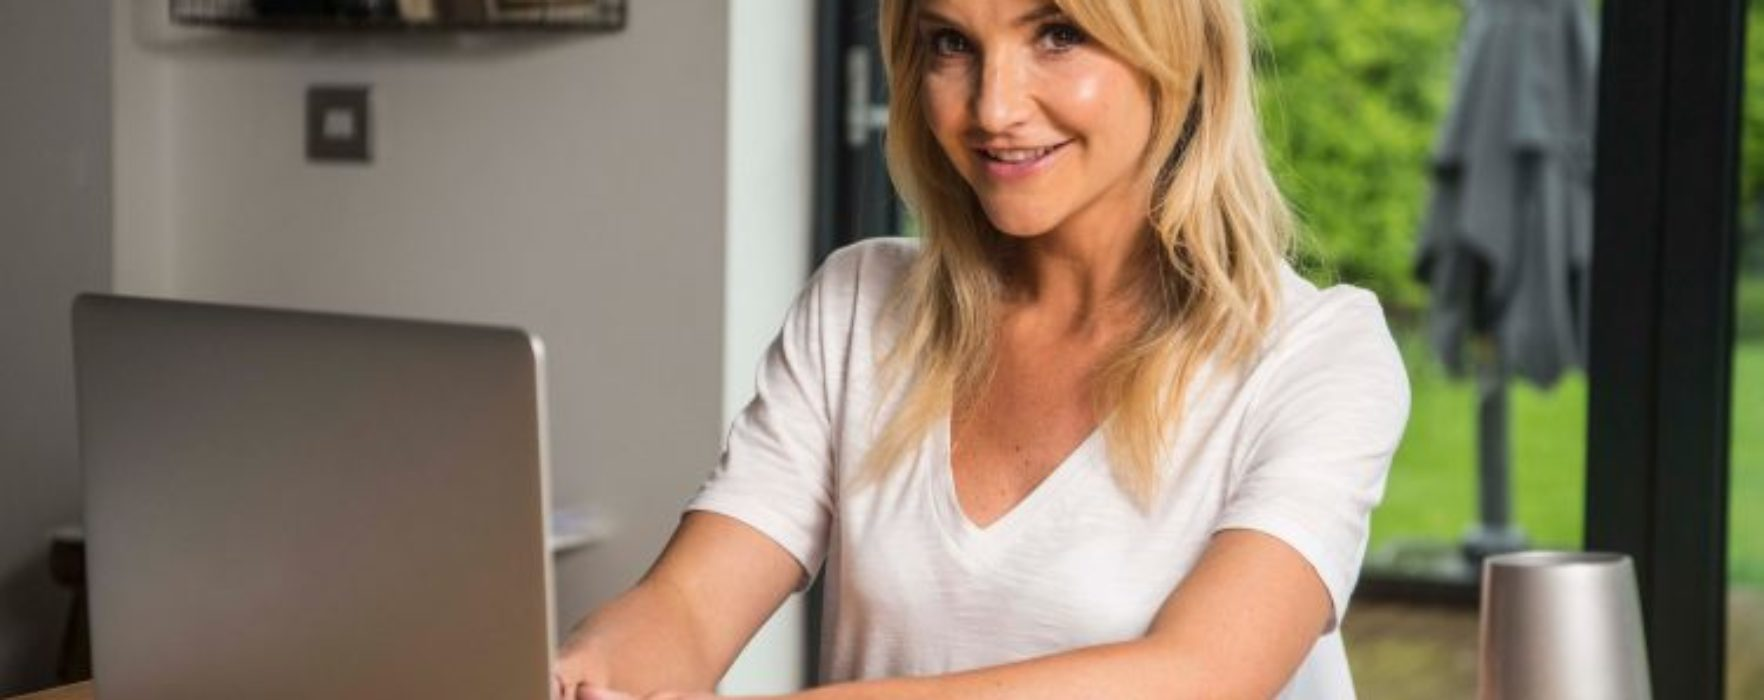 Helen Skelton explains how small actions can make a difference as Cheshire is named as one of Britain's greenest areas